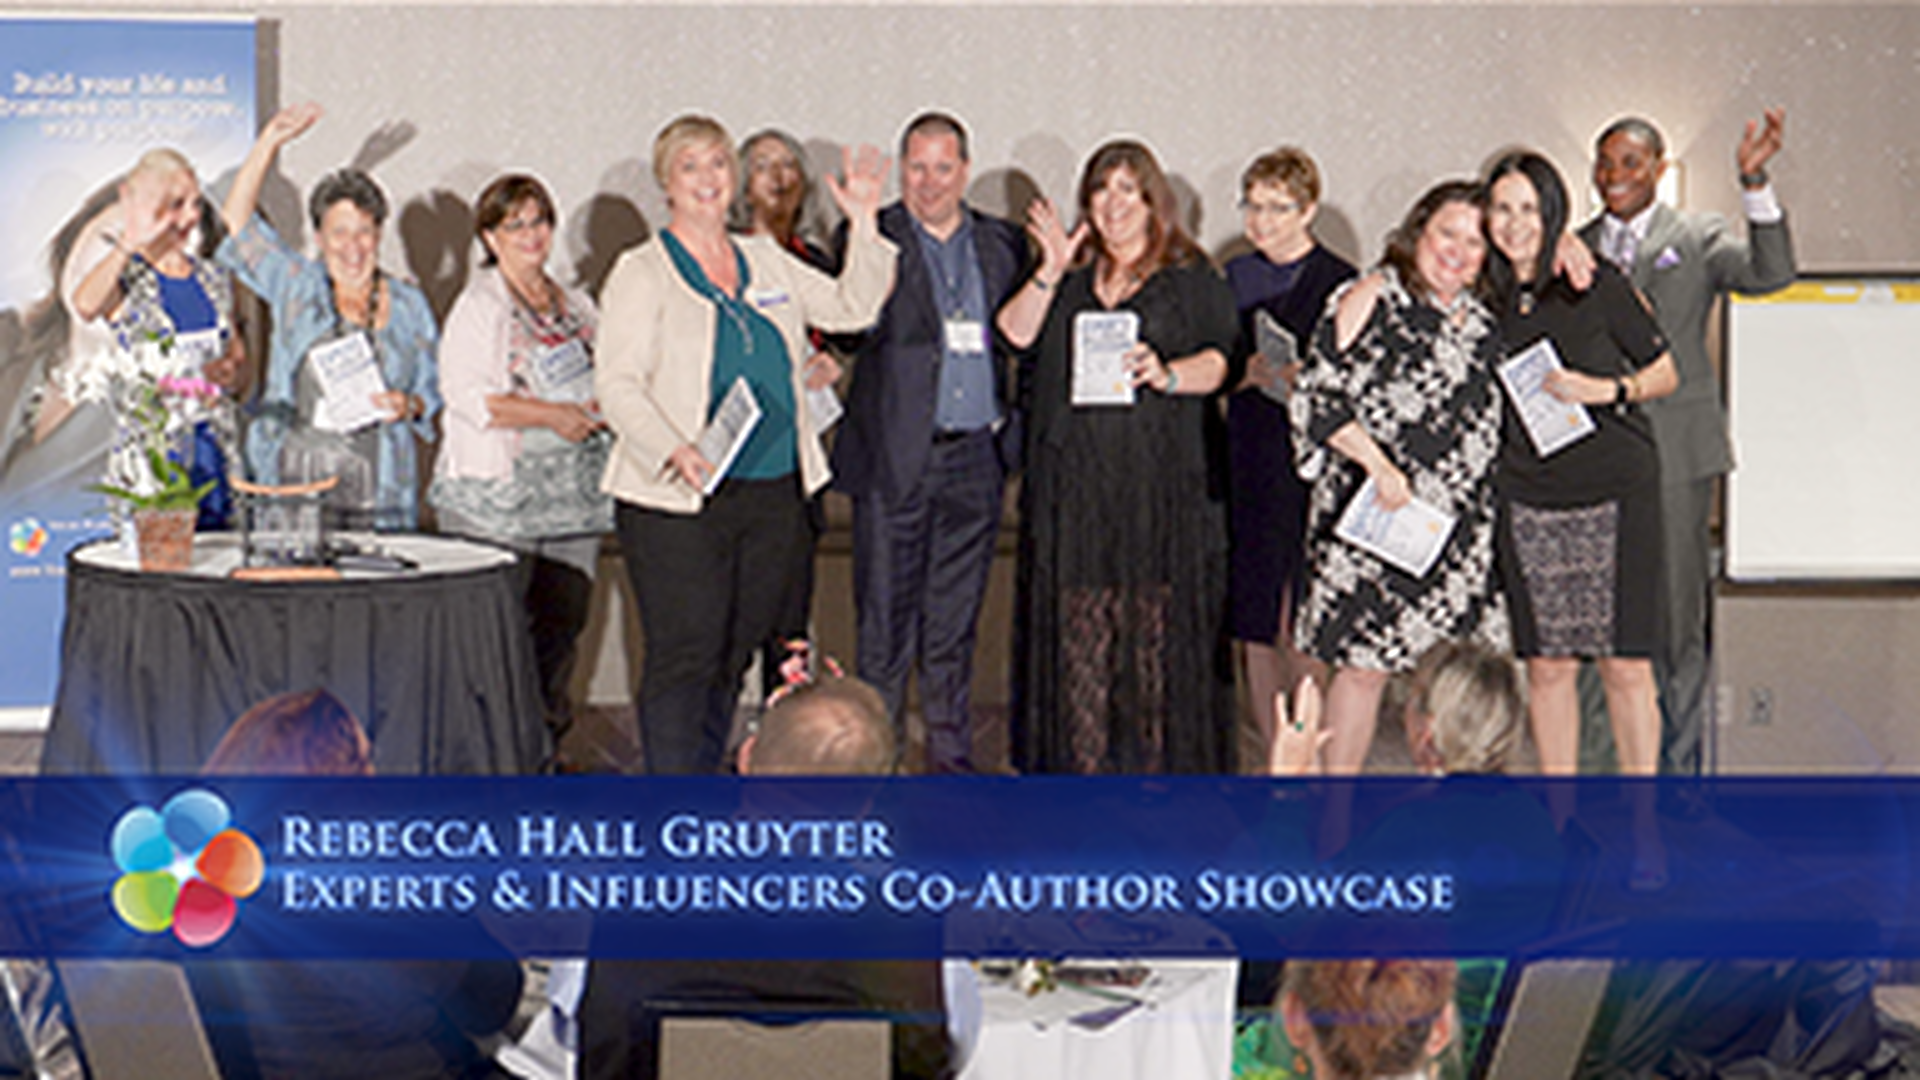 Summer Star 2019 Experts & Influencers Co-Author Showcase